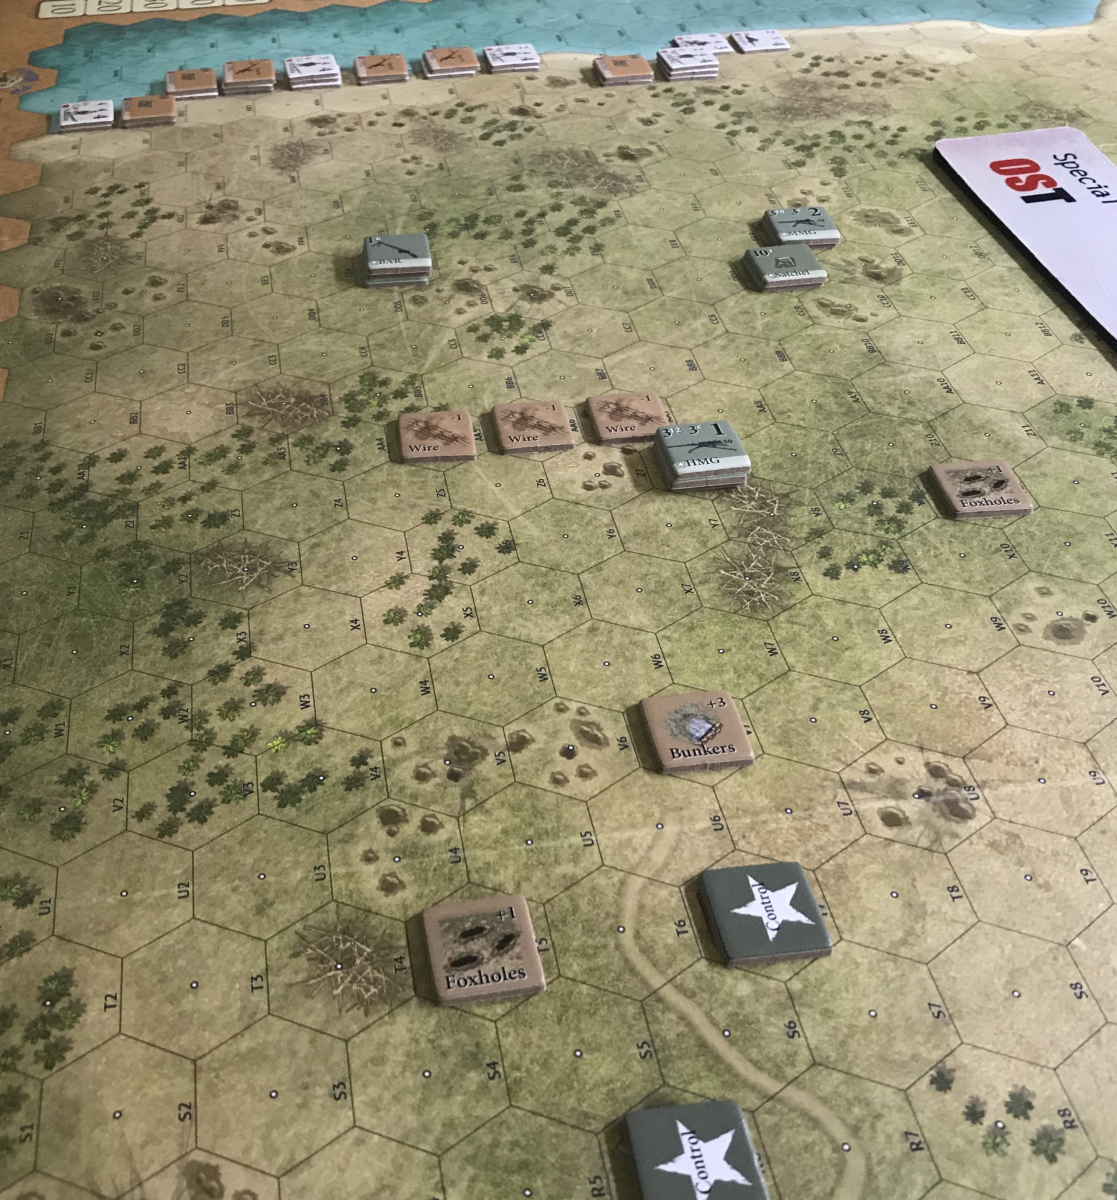 The Player's Aid digs into Hell Bent, the expansion for Old School Tactical 3, the Pacific. See their thoughts as they play through a couple of the scenarios #wargame #actionpoints #tabletop @consimworld @HeavyCardboard @BoardGameGeek   https://tinyurl.com/yxeqvtqzpic.twitter.com/lAaoZqYoGm